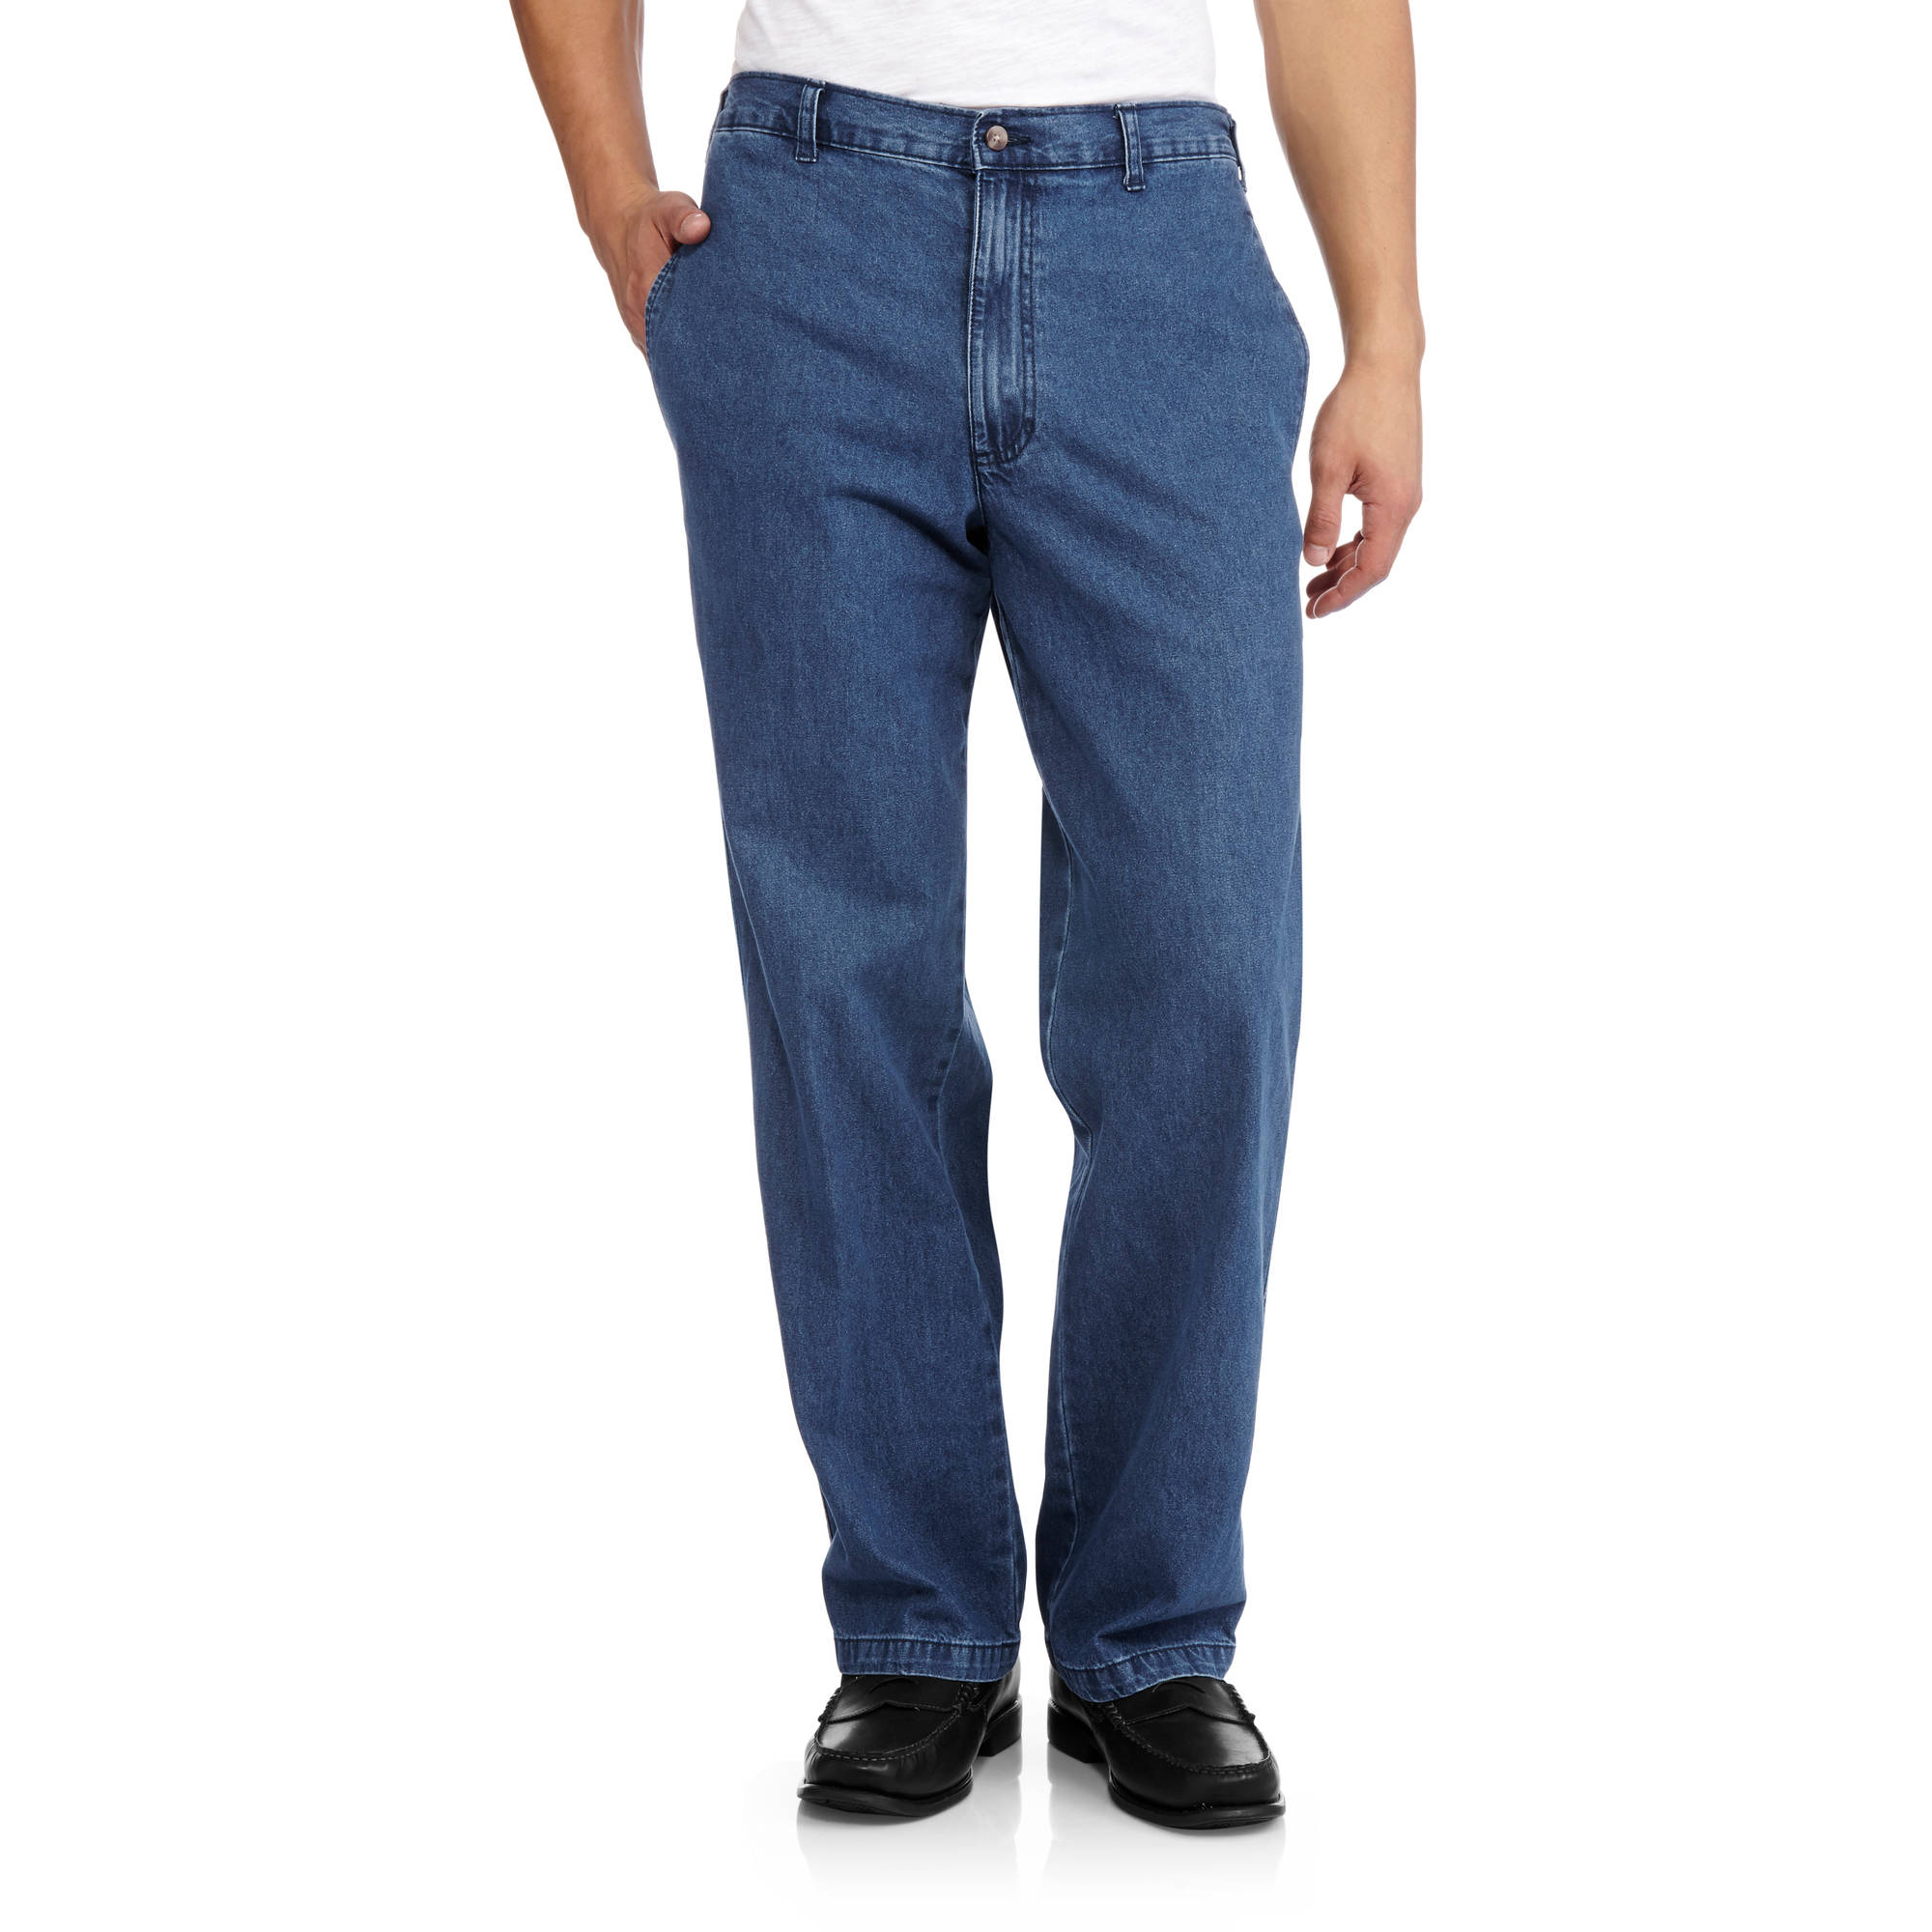 Big Men's Elastic Denim Pant